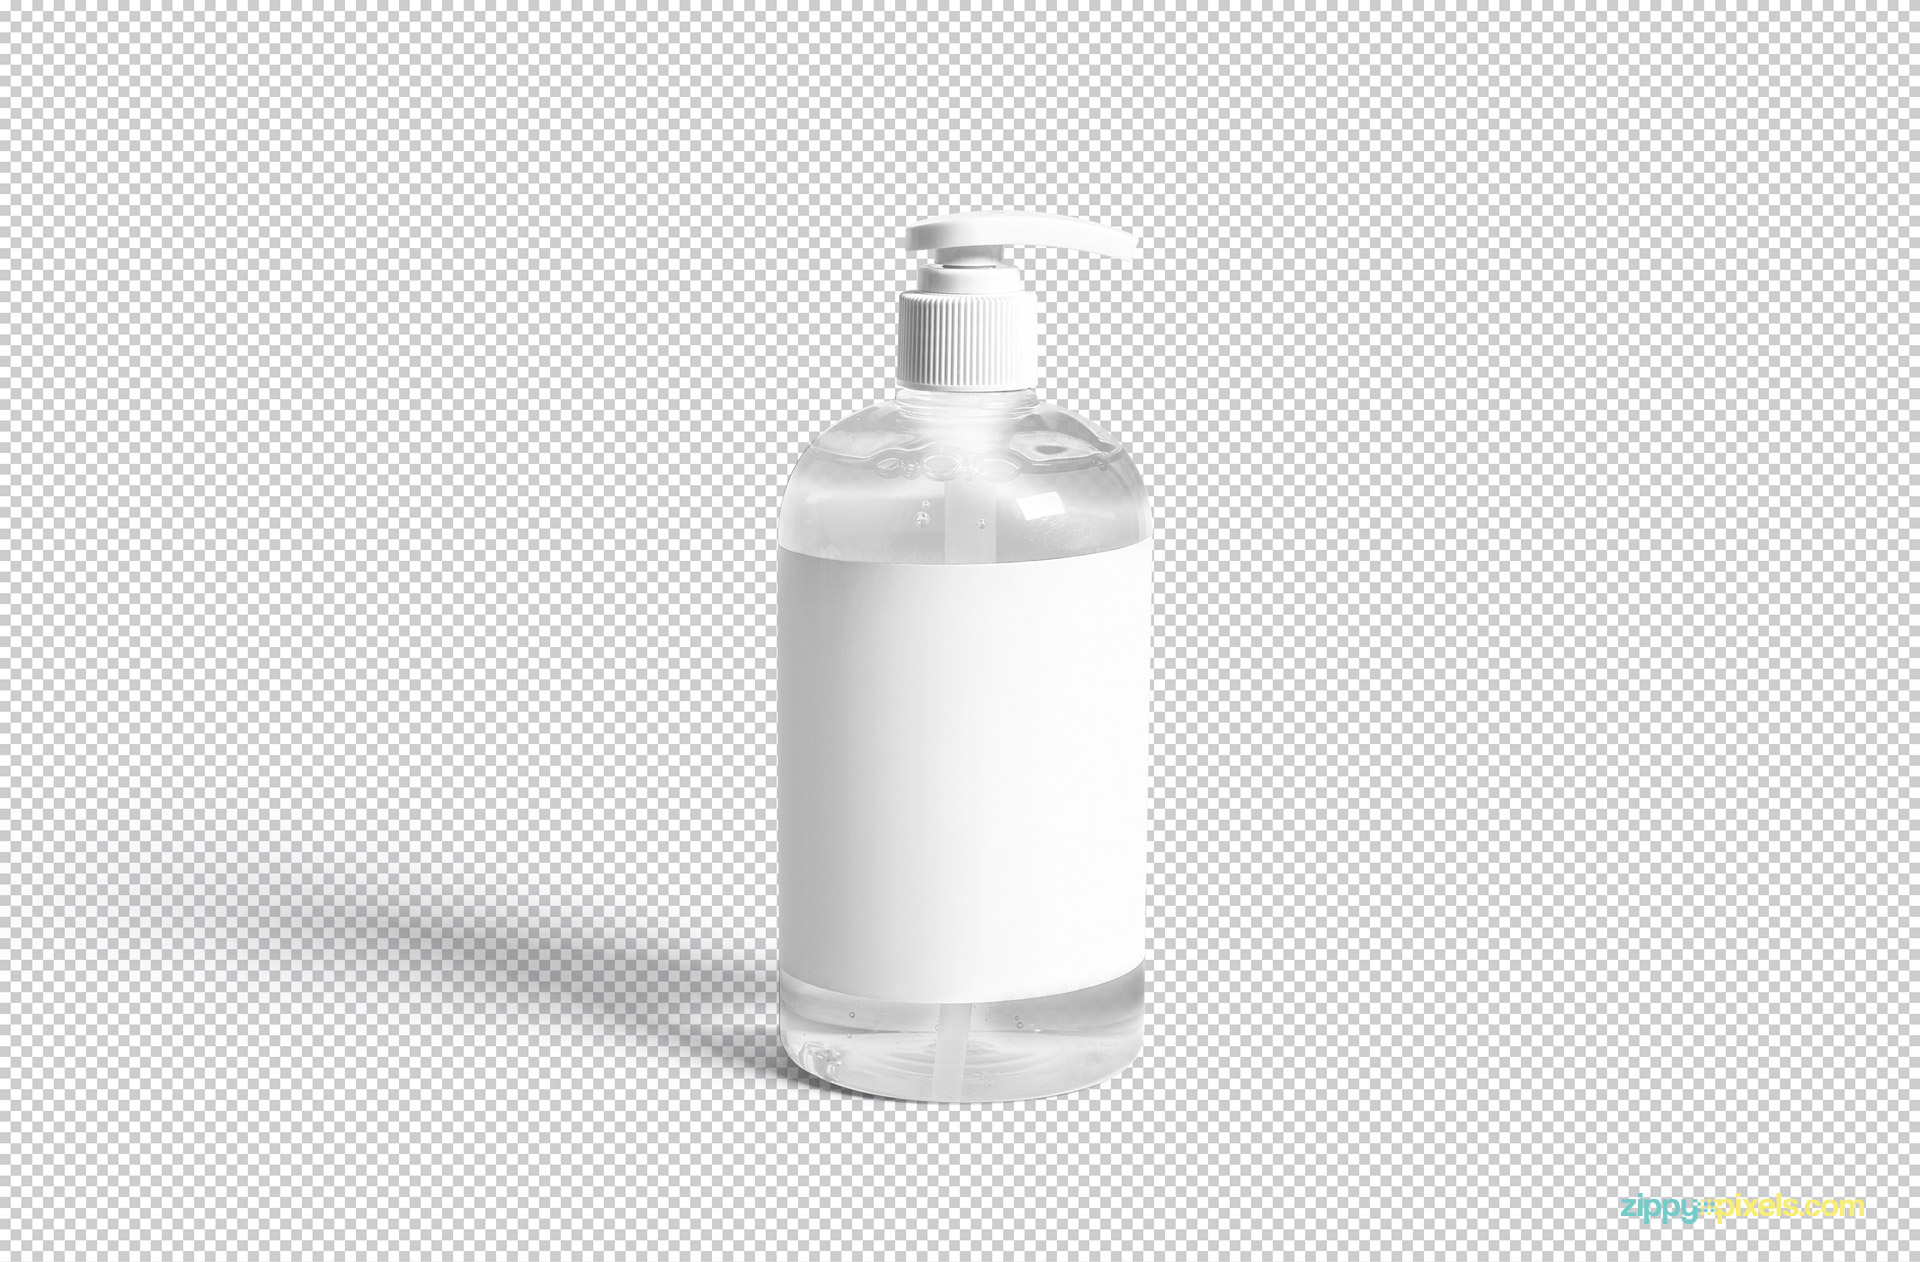 This pump bottle mockup is available in PSD format so you can edit it in Adobe Photoshop.